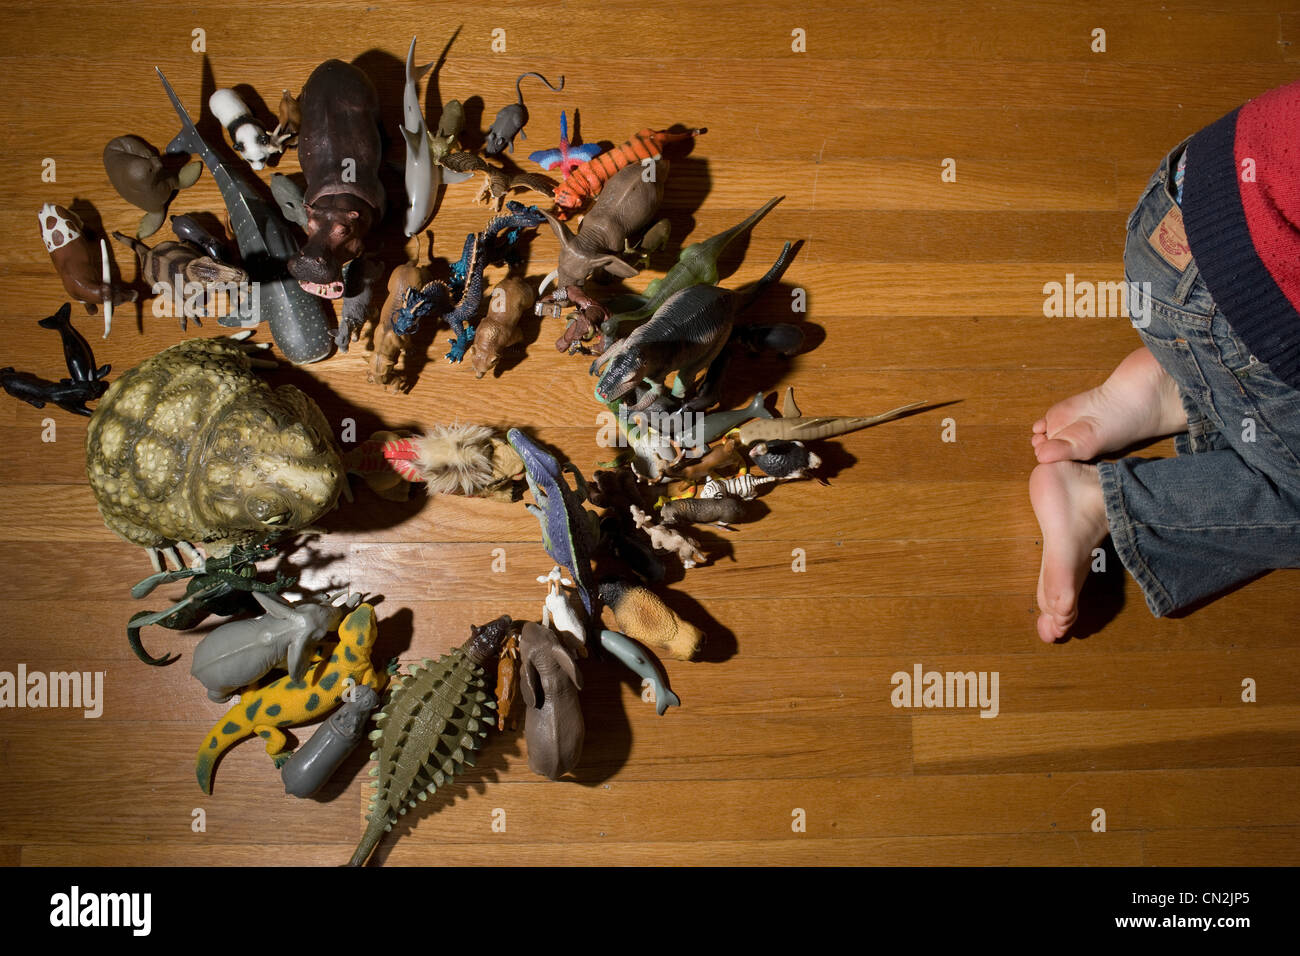 Toddler boy with toy animals on floor - Stock Image